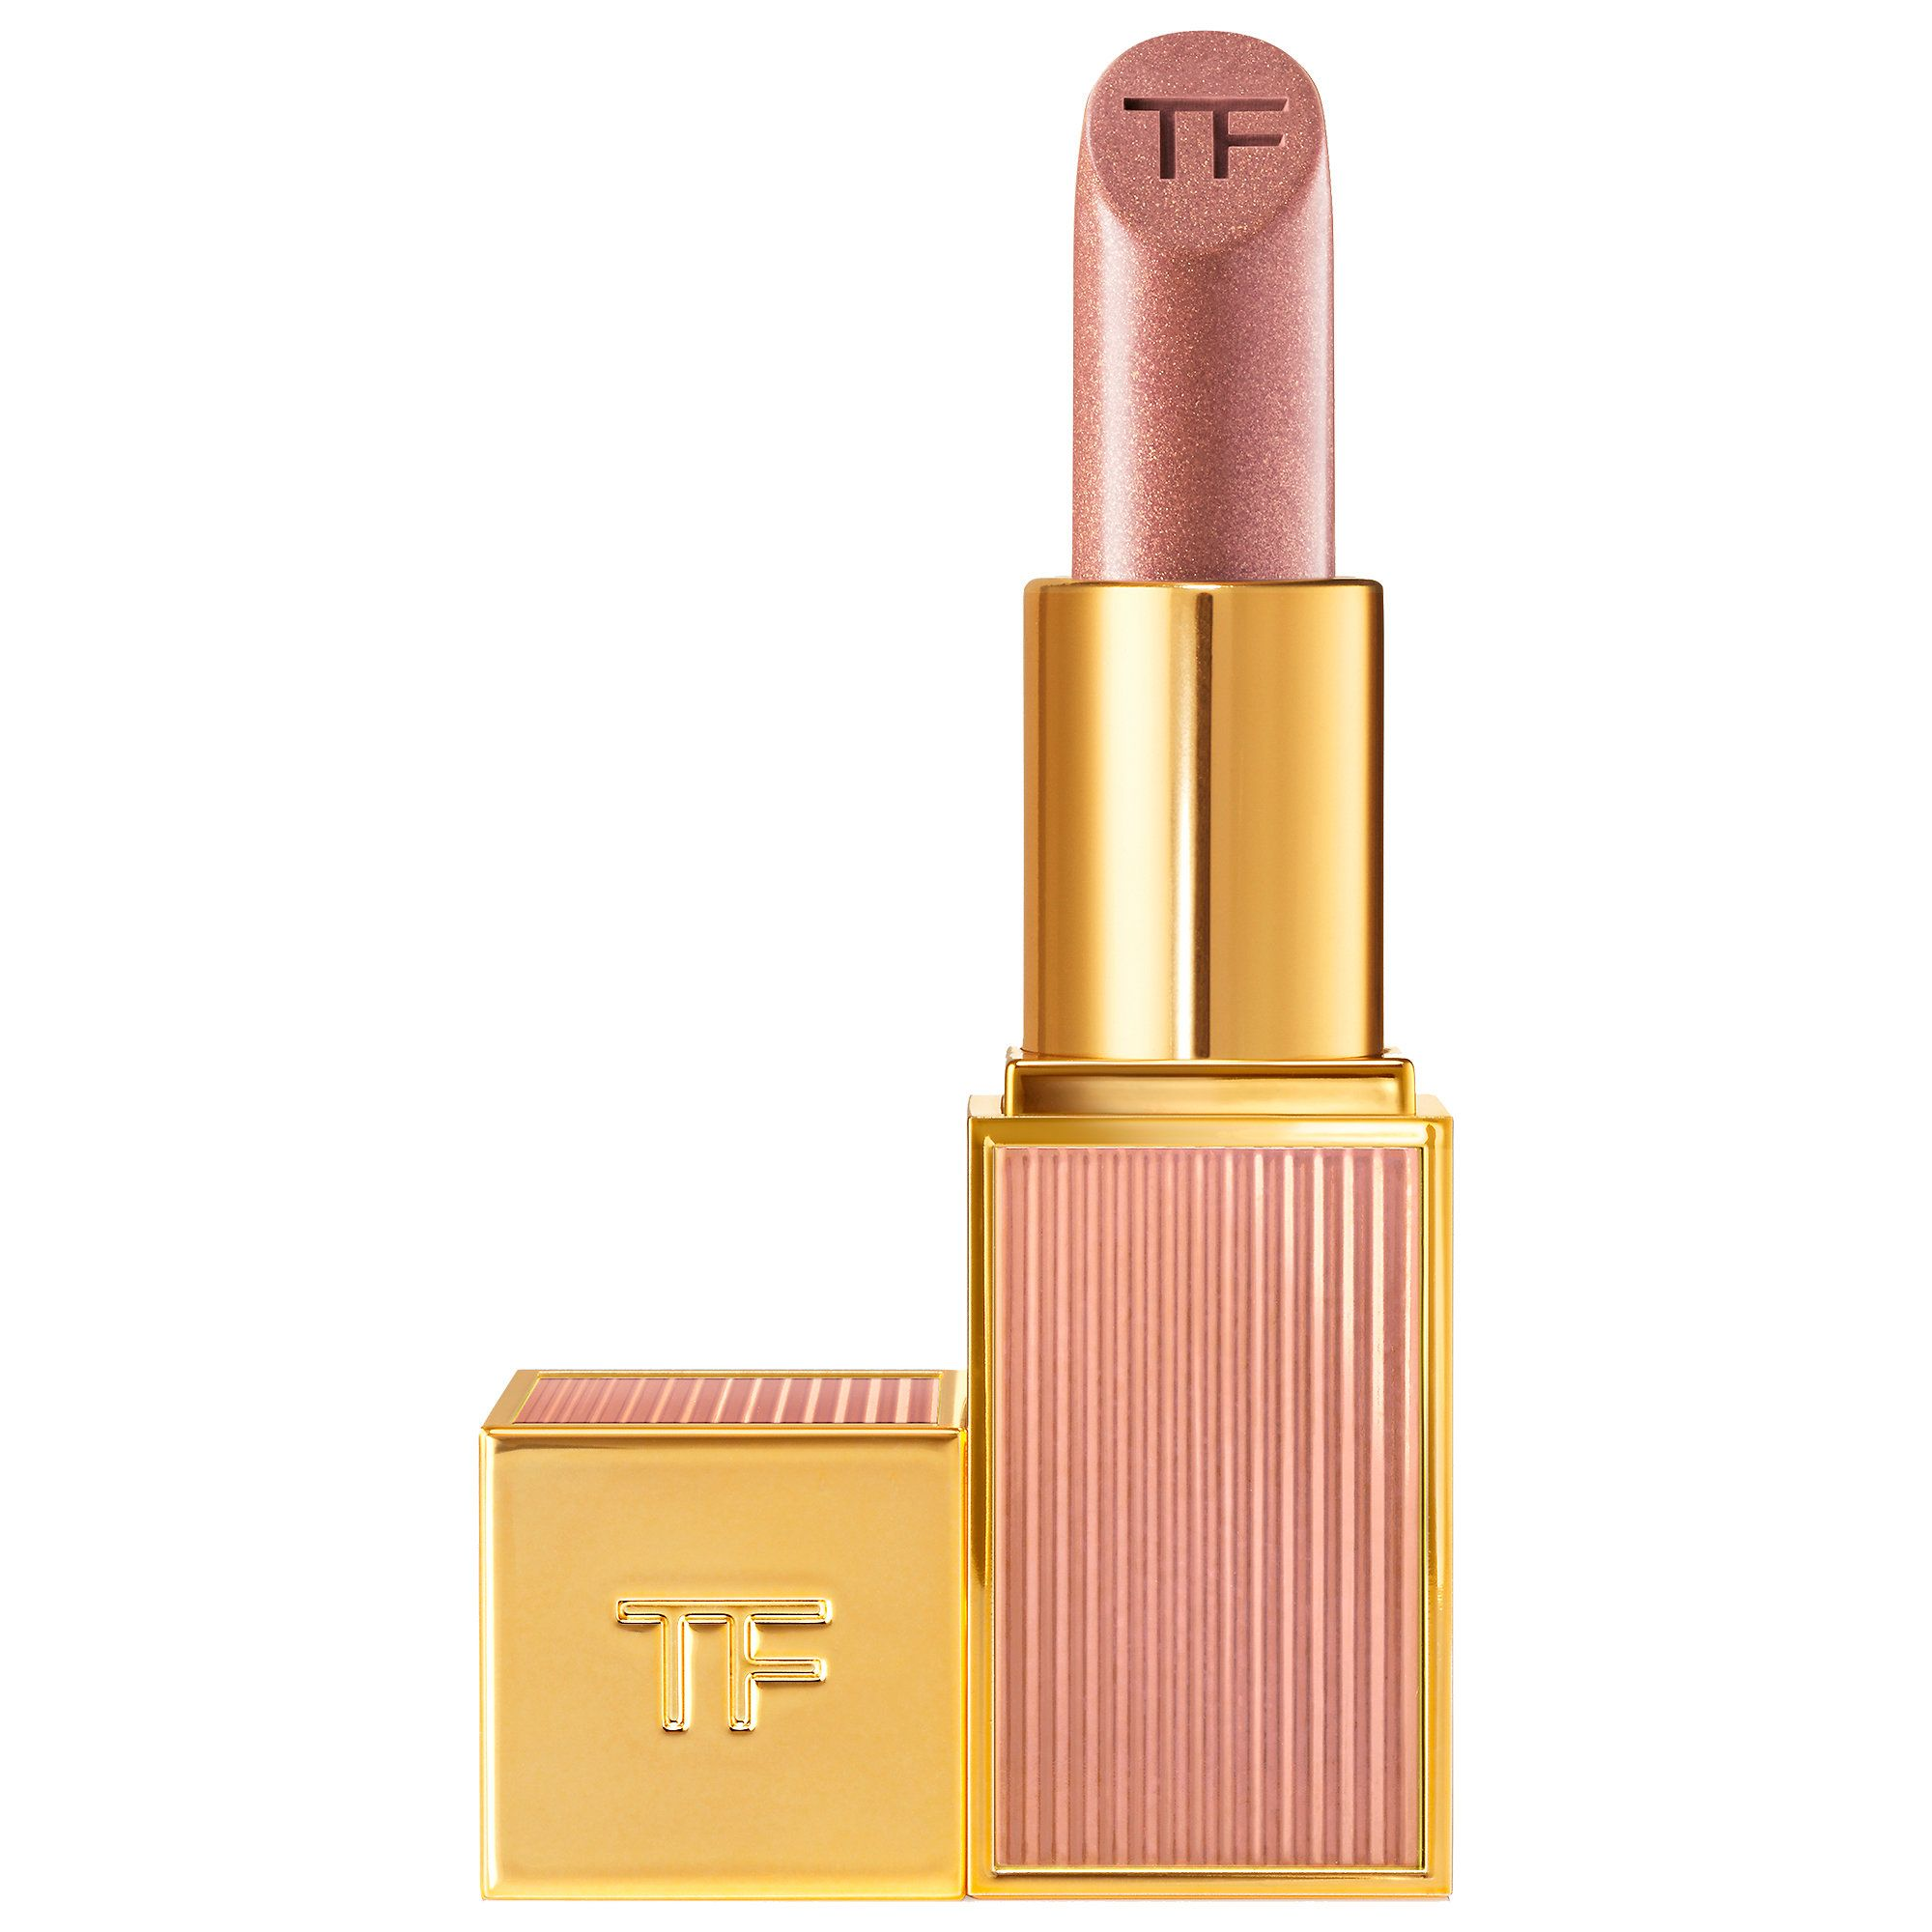 pictures Our Christmas Beauty Lust List Tom Ford Trousseau, Anyone